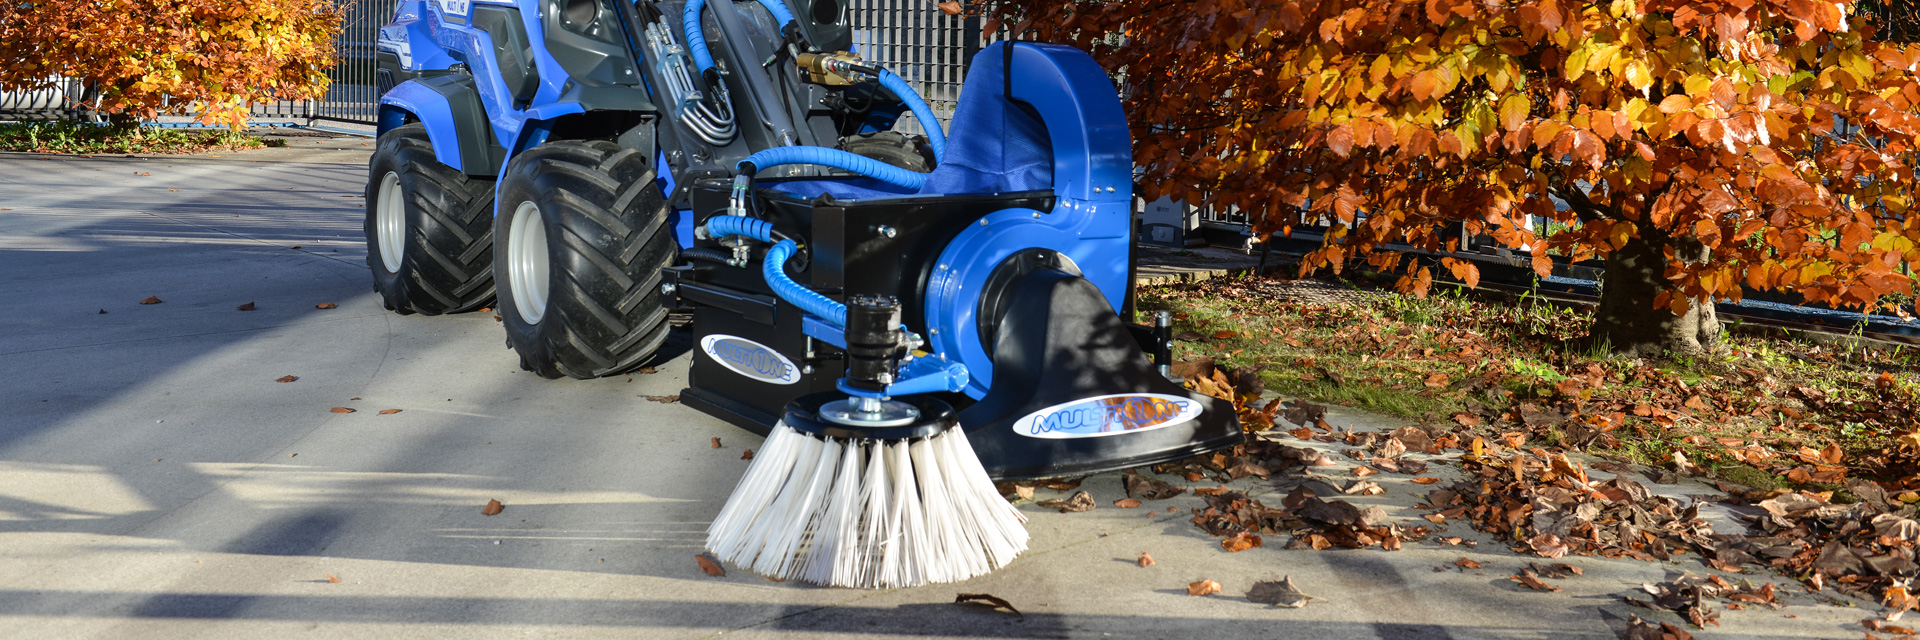 Multione-leaf-vacuum-attachment